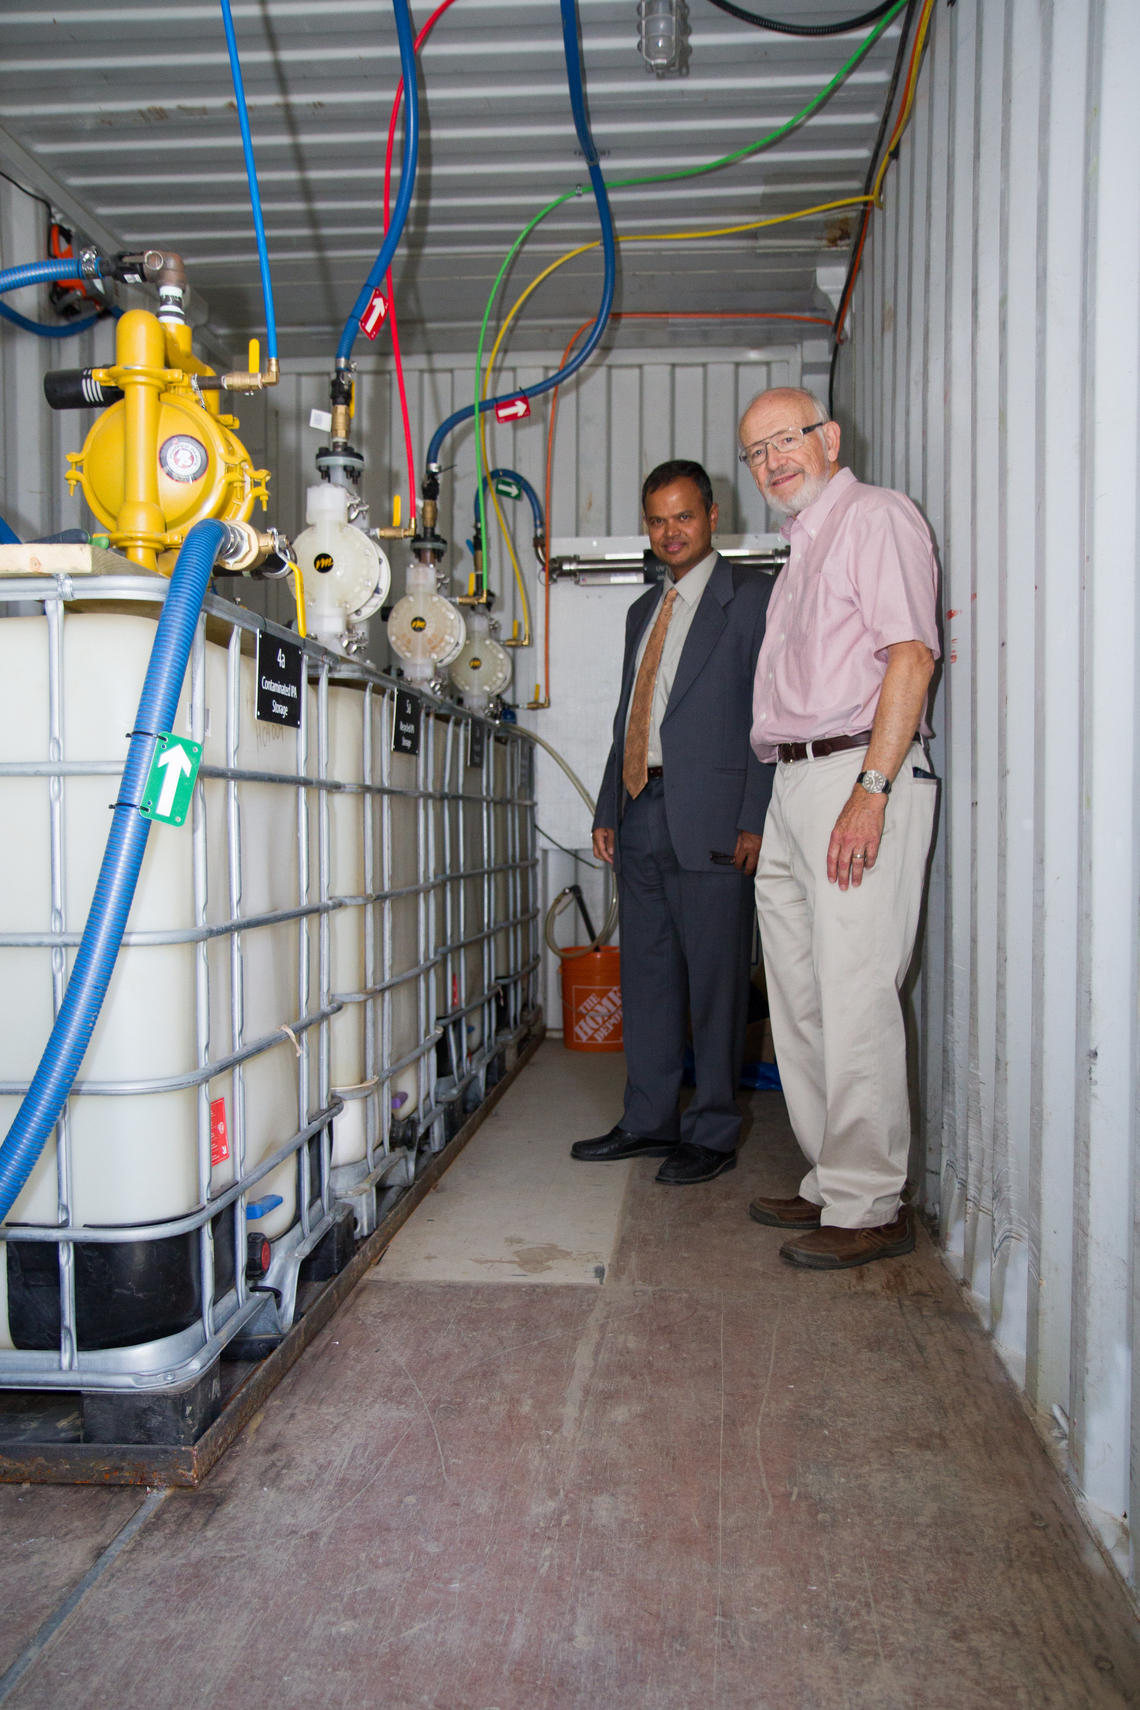 Gopal Achari, left, professor of civil engineering in the Schulich School of Engineering, and Cooper Langford, professor of chemistry in the Faculty of Science, stand inside the mobile PCB cleanup unit.